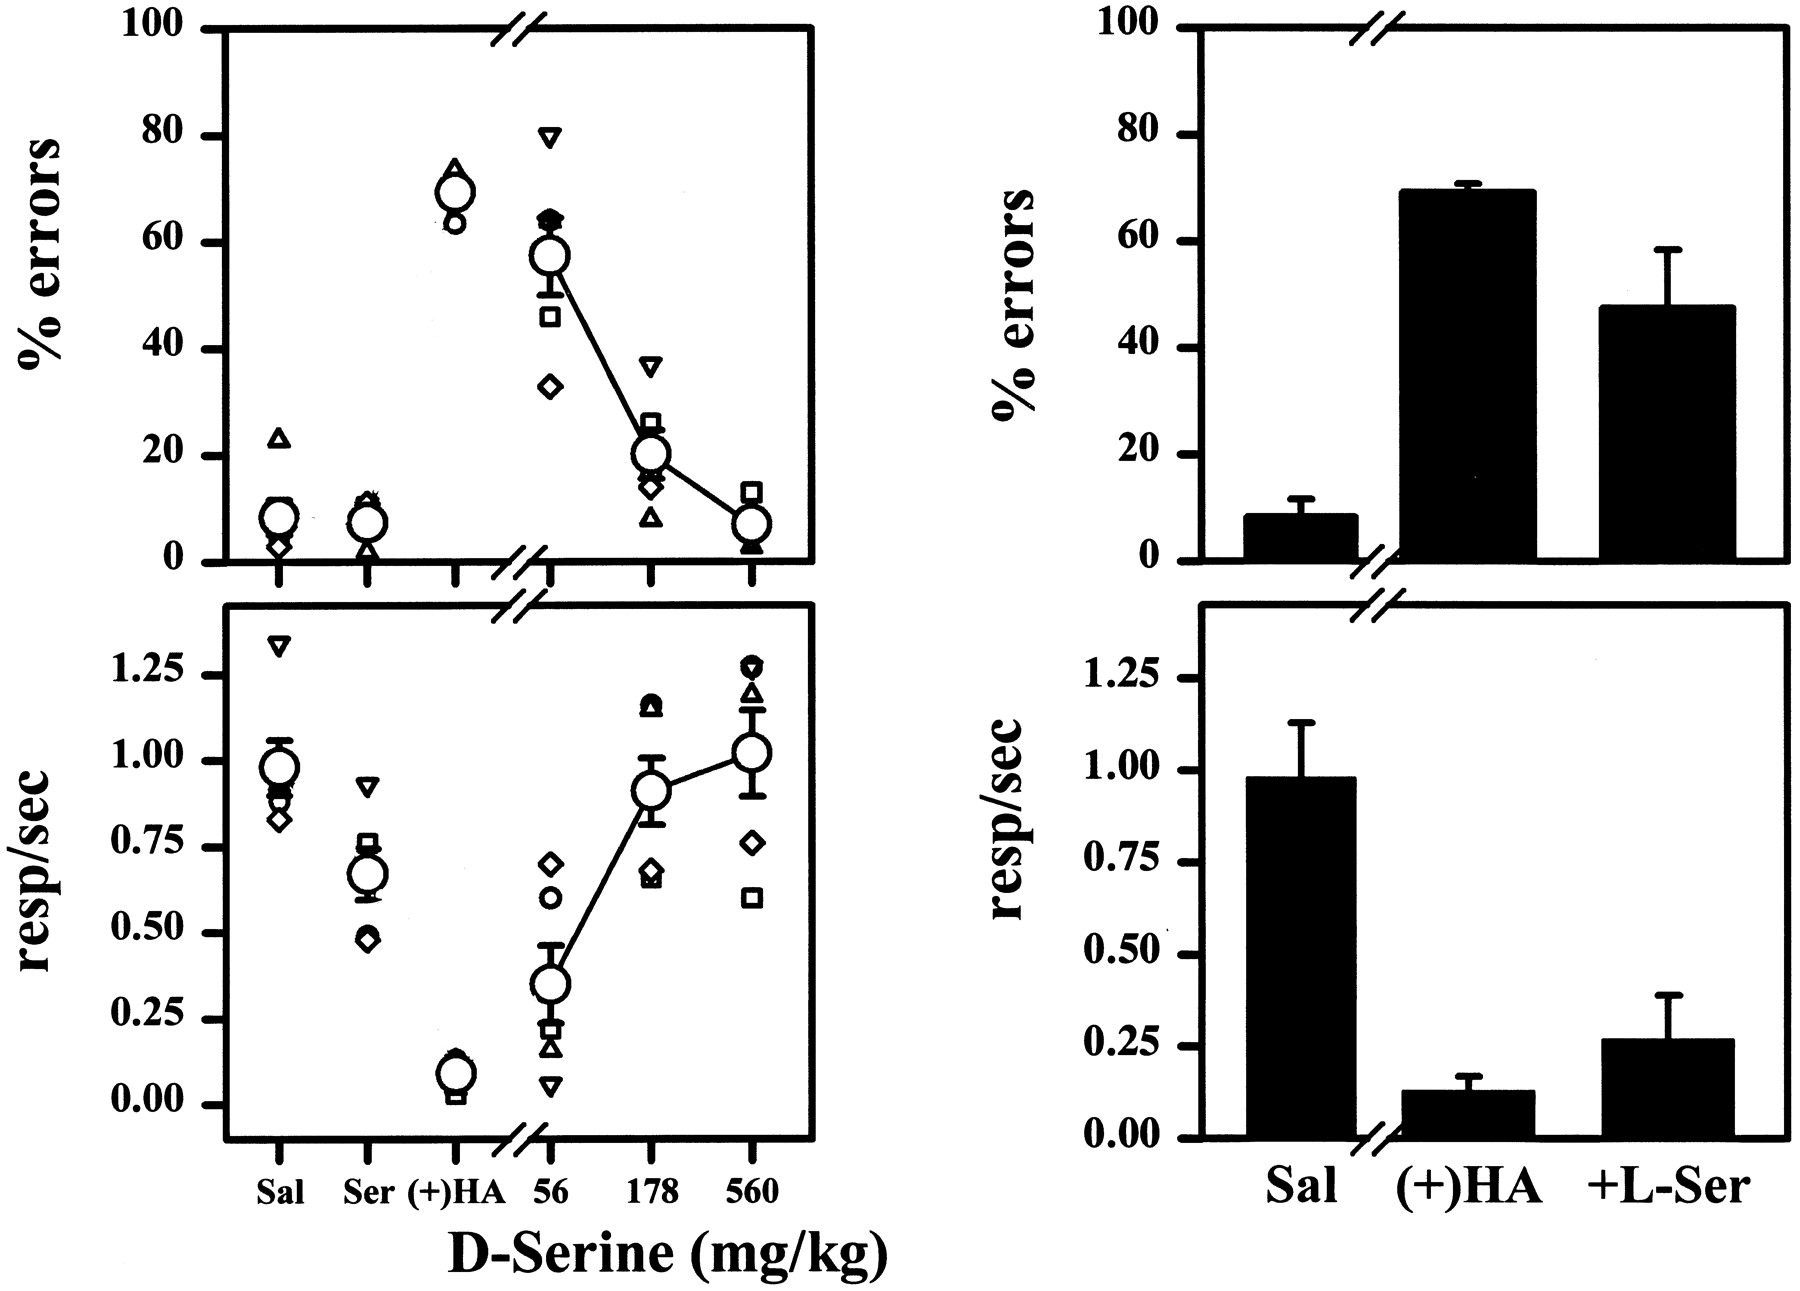 Effects of (+)-HA-966, CGS-19755, Phencyclidine, and